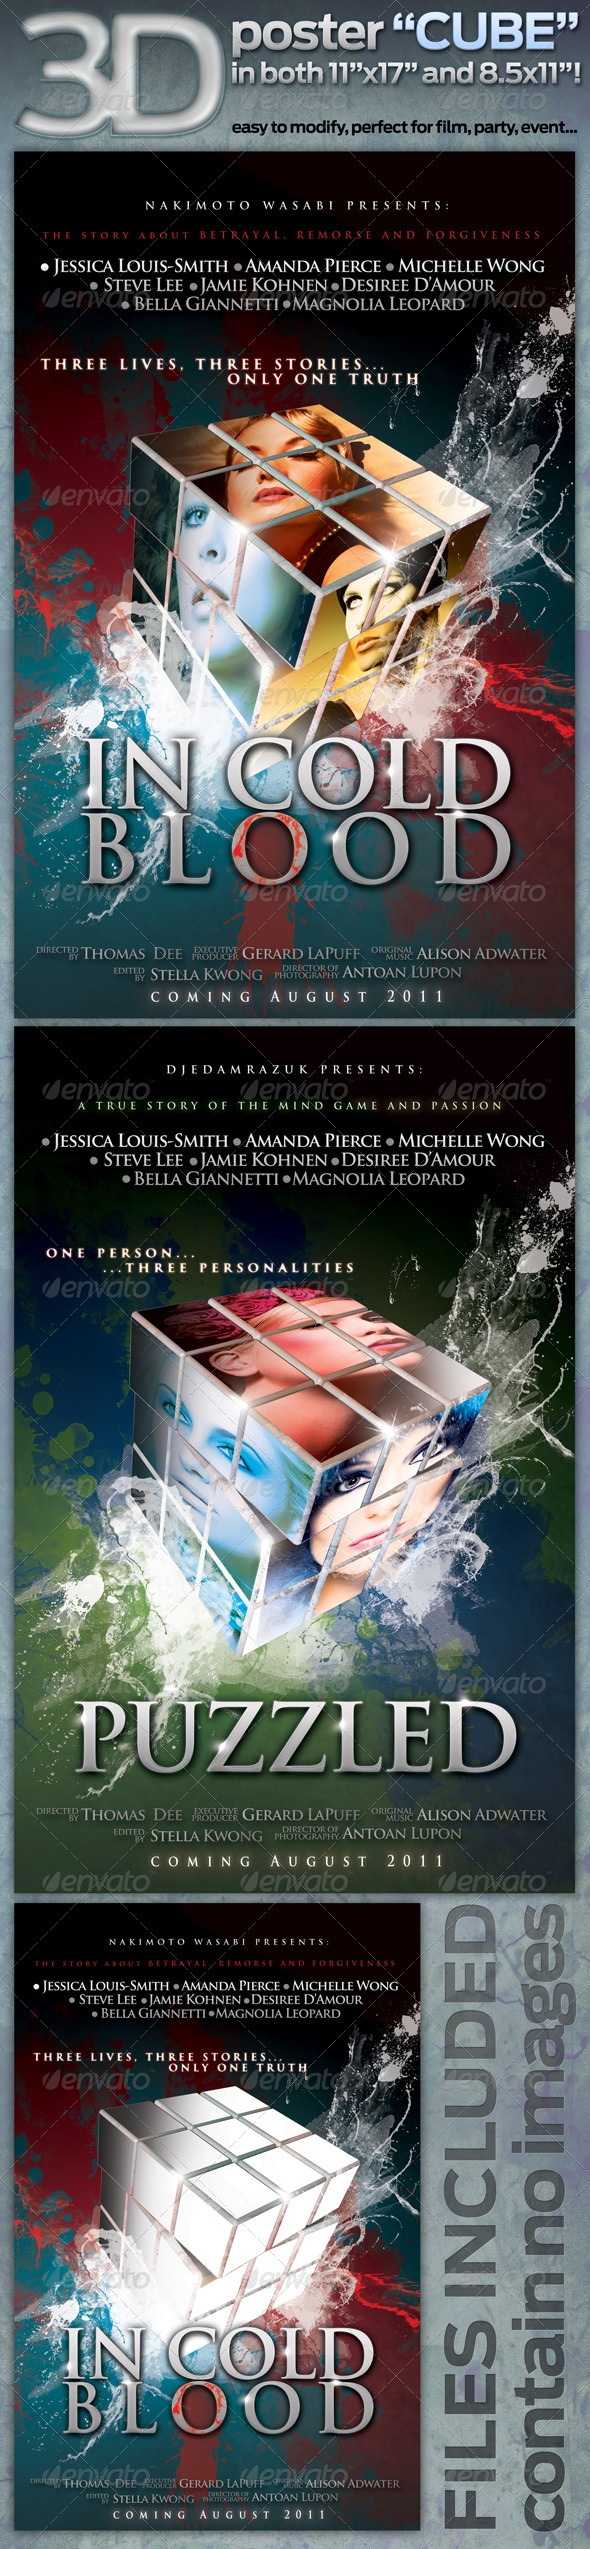 GraphicRiver 3D poster CUBE in both 11 x17 AND 8.5 x11 212223